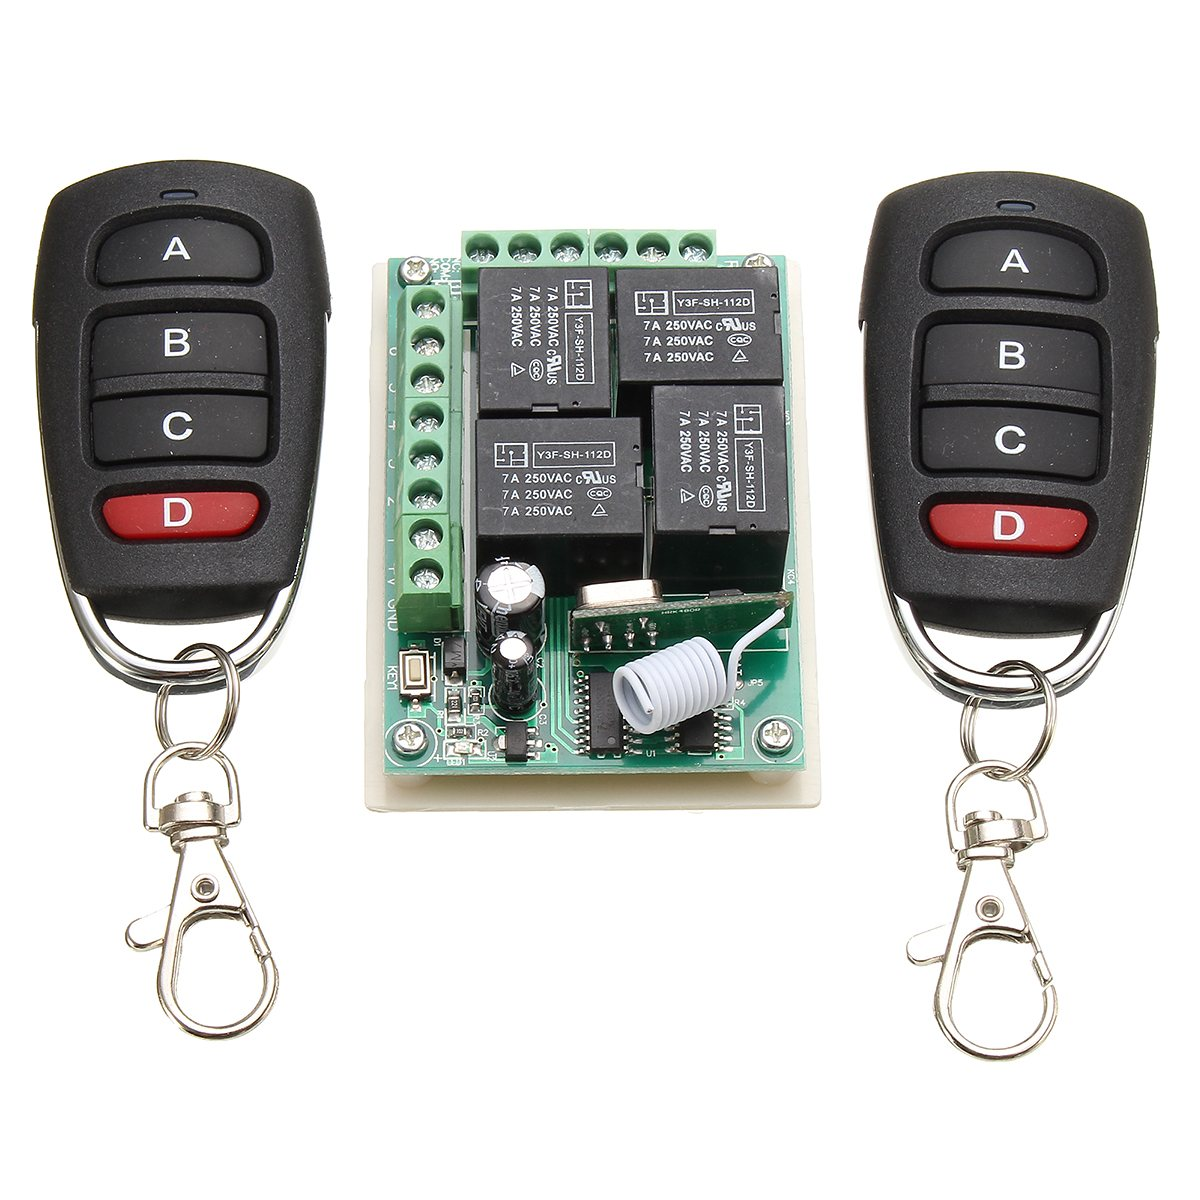 KROAK 433Mhz Universal Wireless Remote Control Switch DC 12V 4CH Channel Relay 2 Transmitter+Receiver стоимость